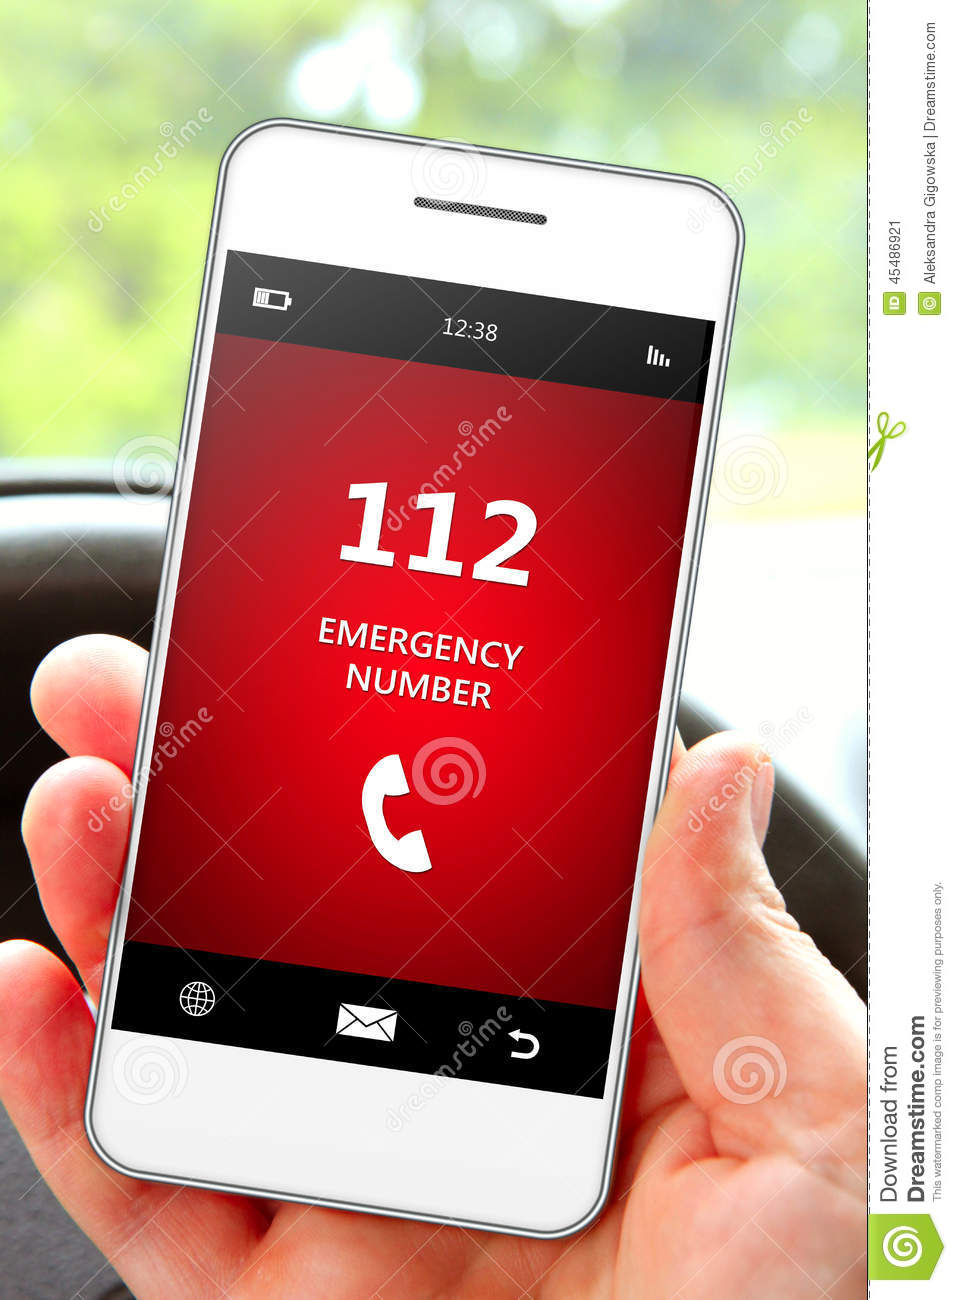 hand holding mobile phone 112 emergency number stock photo. Black Bedroom Furniture Sets. Home Design Ideas